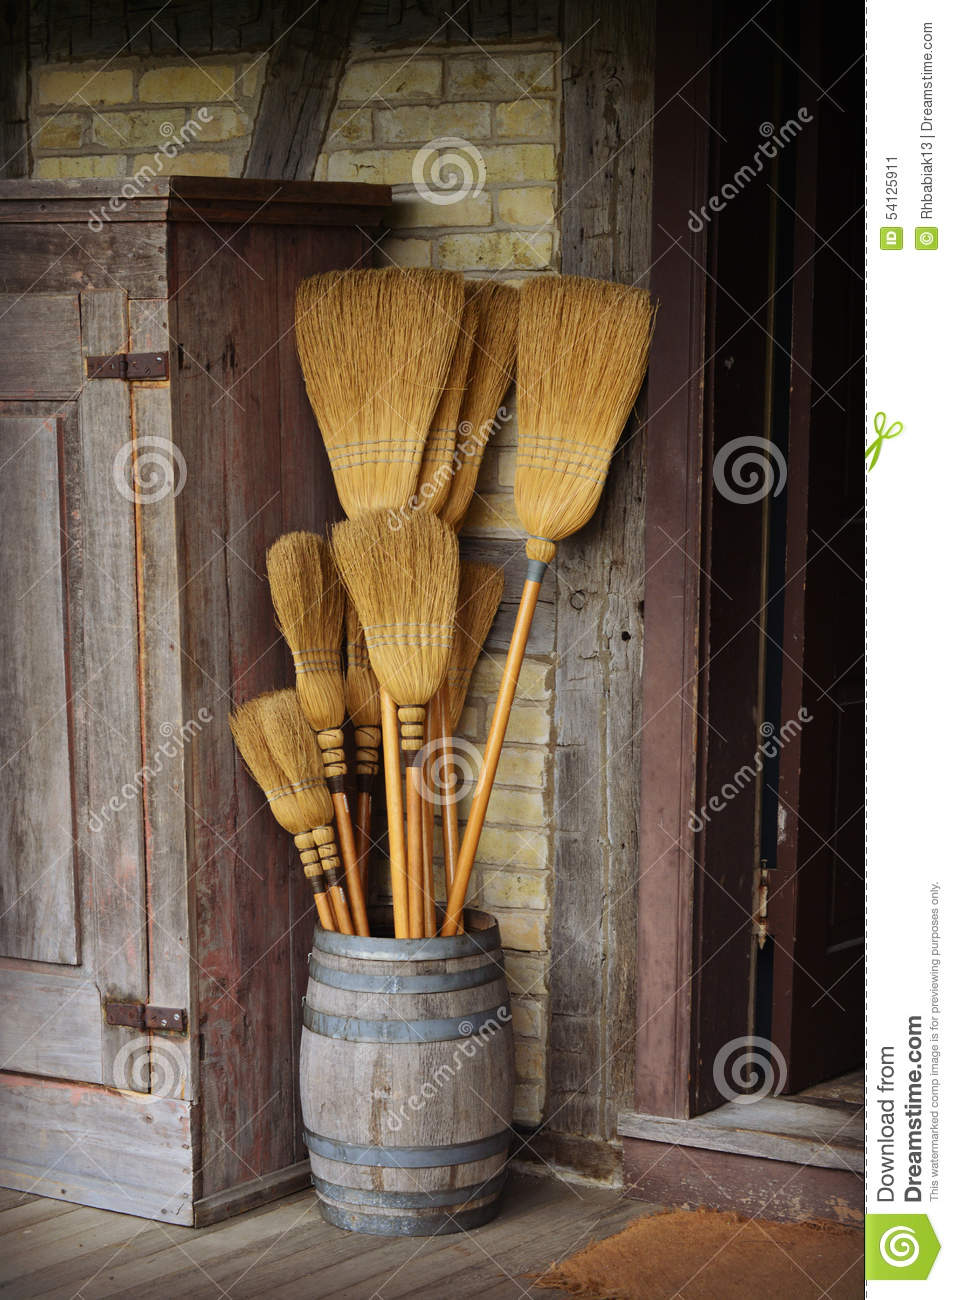 Barrel of brooms stock photo image 54125911 for Old world floors